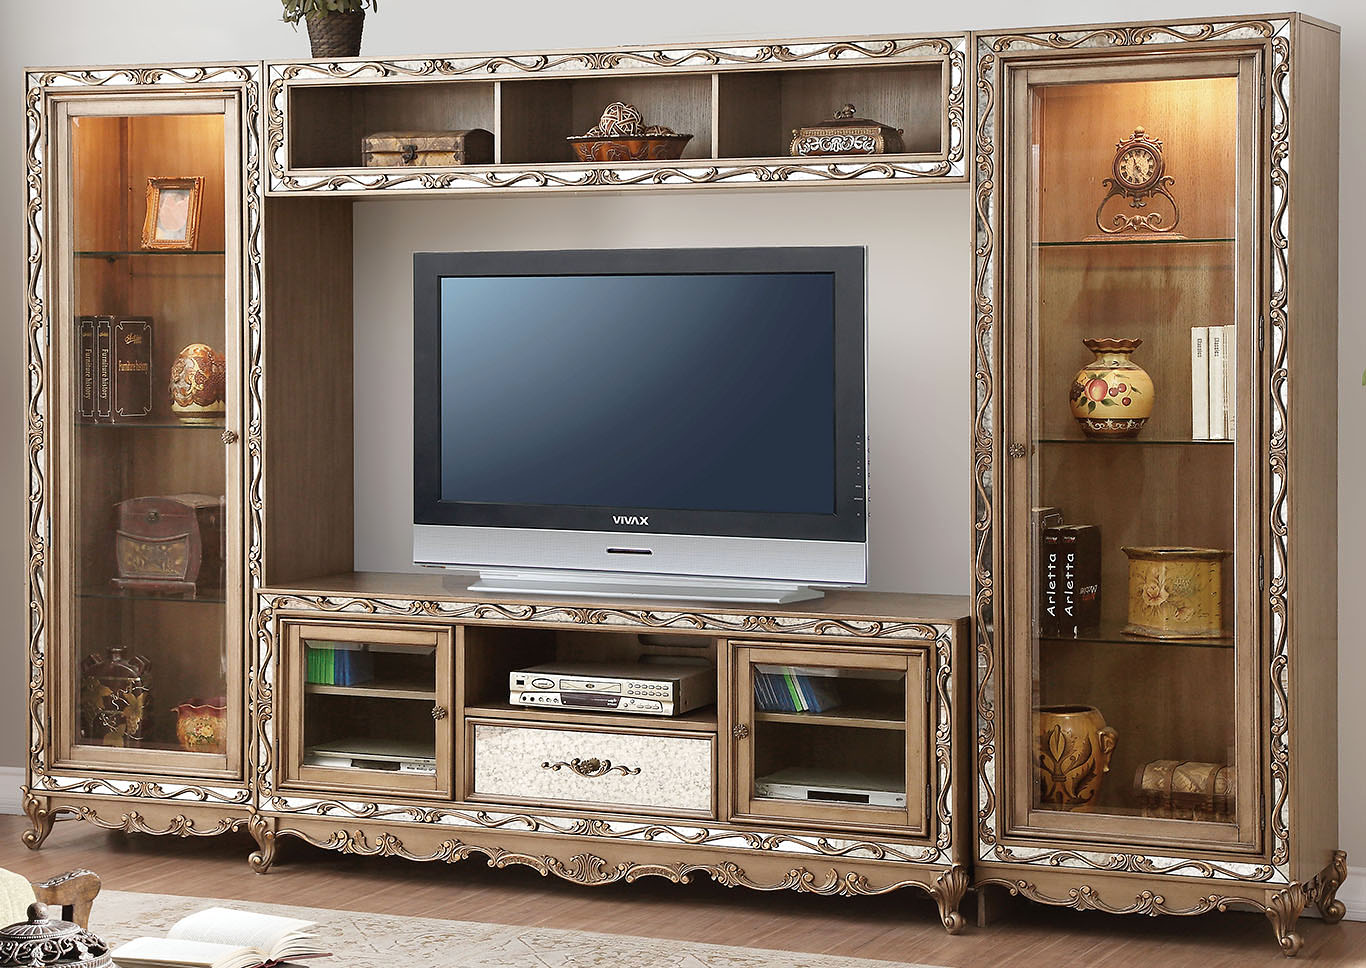 Orianne Gold finish Entertainment Center,Acme